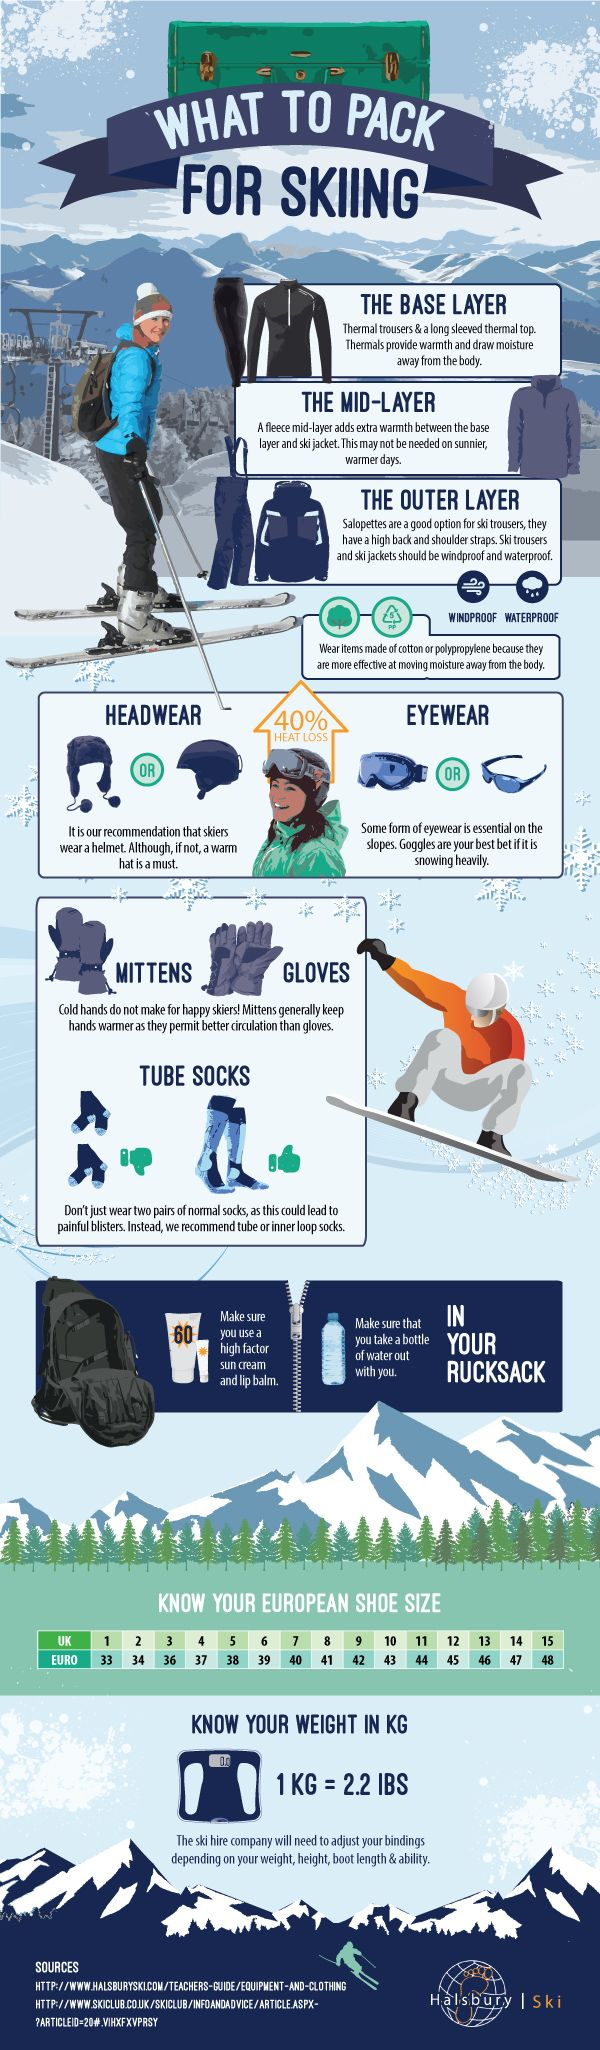 What to Pack for Skiing #Infographic #design #ski www.halsbury.com/ski